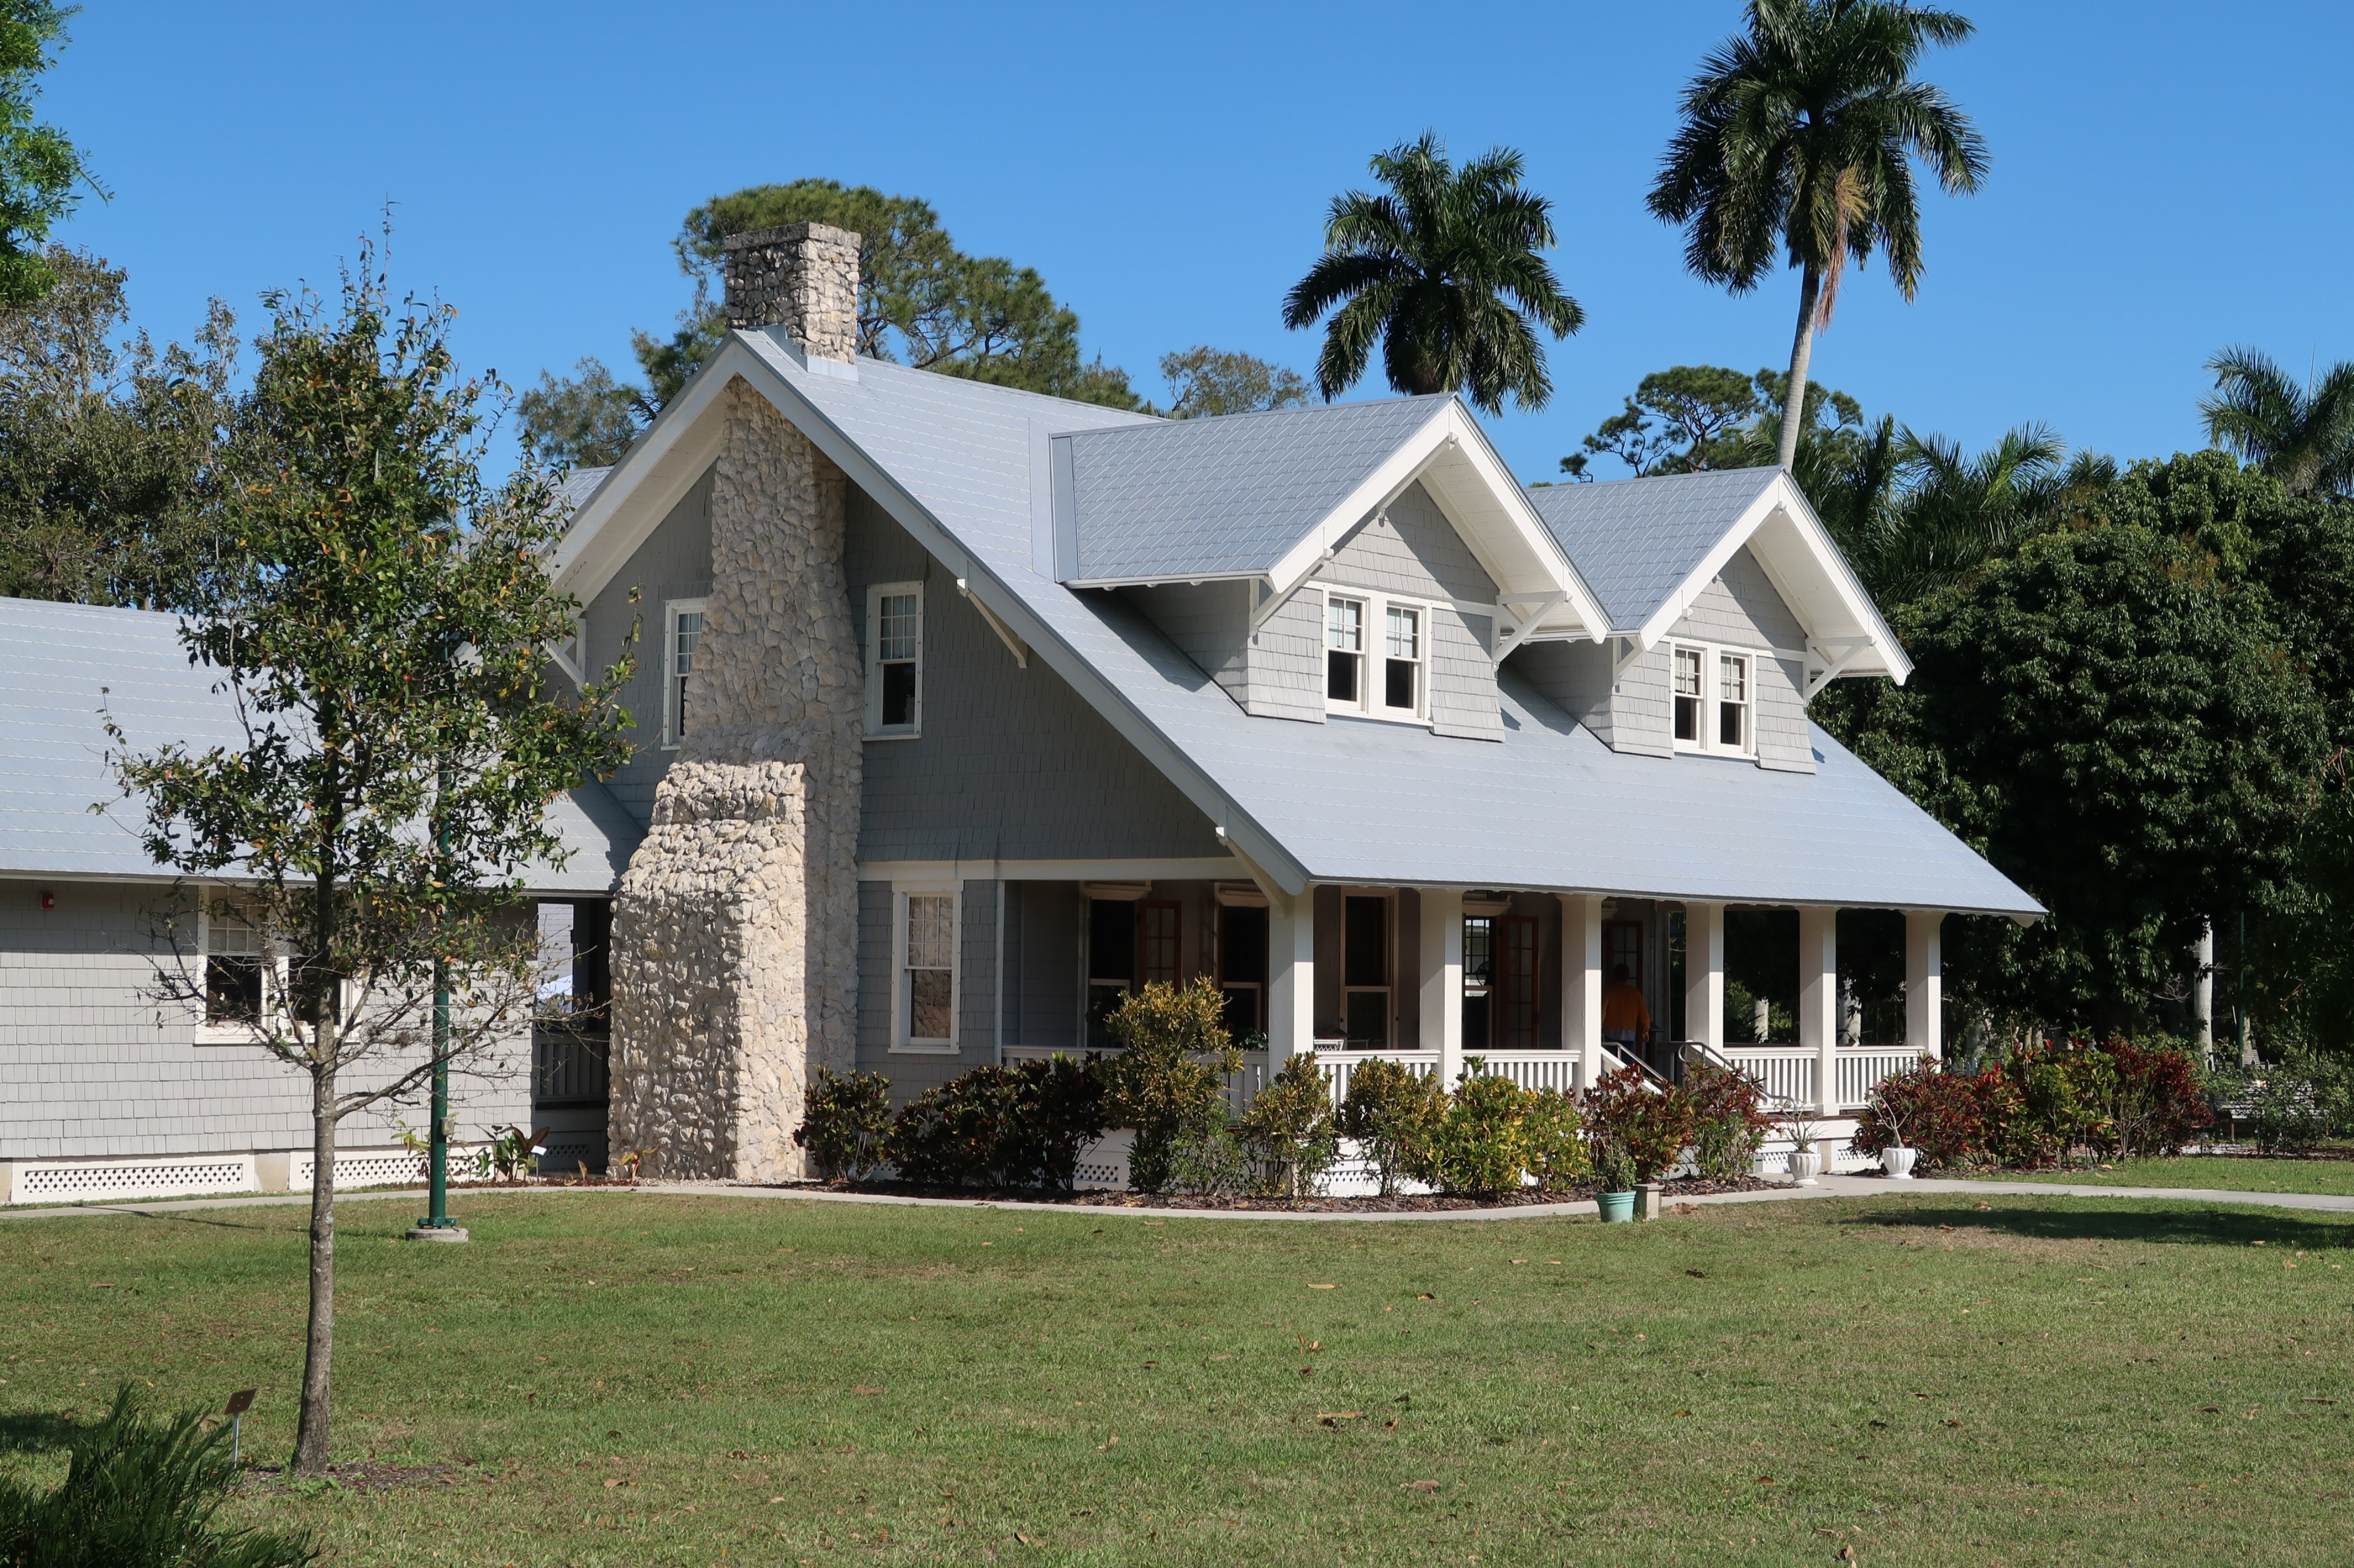 Home Insurance in Baton Rouge